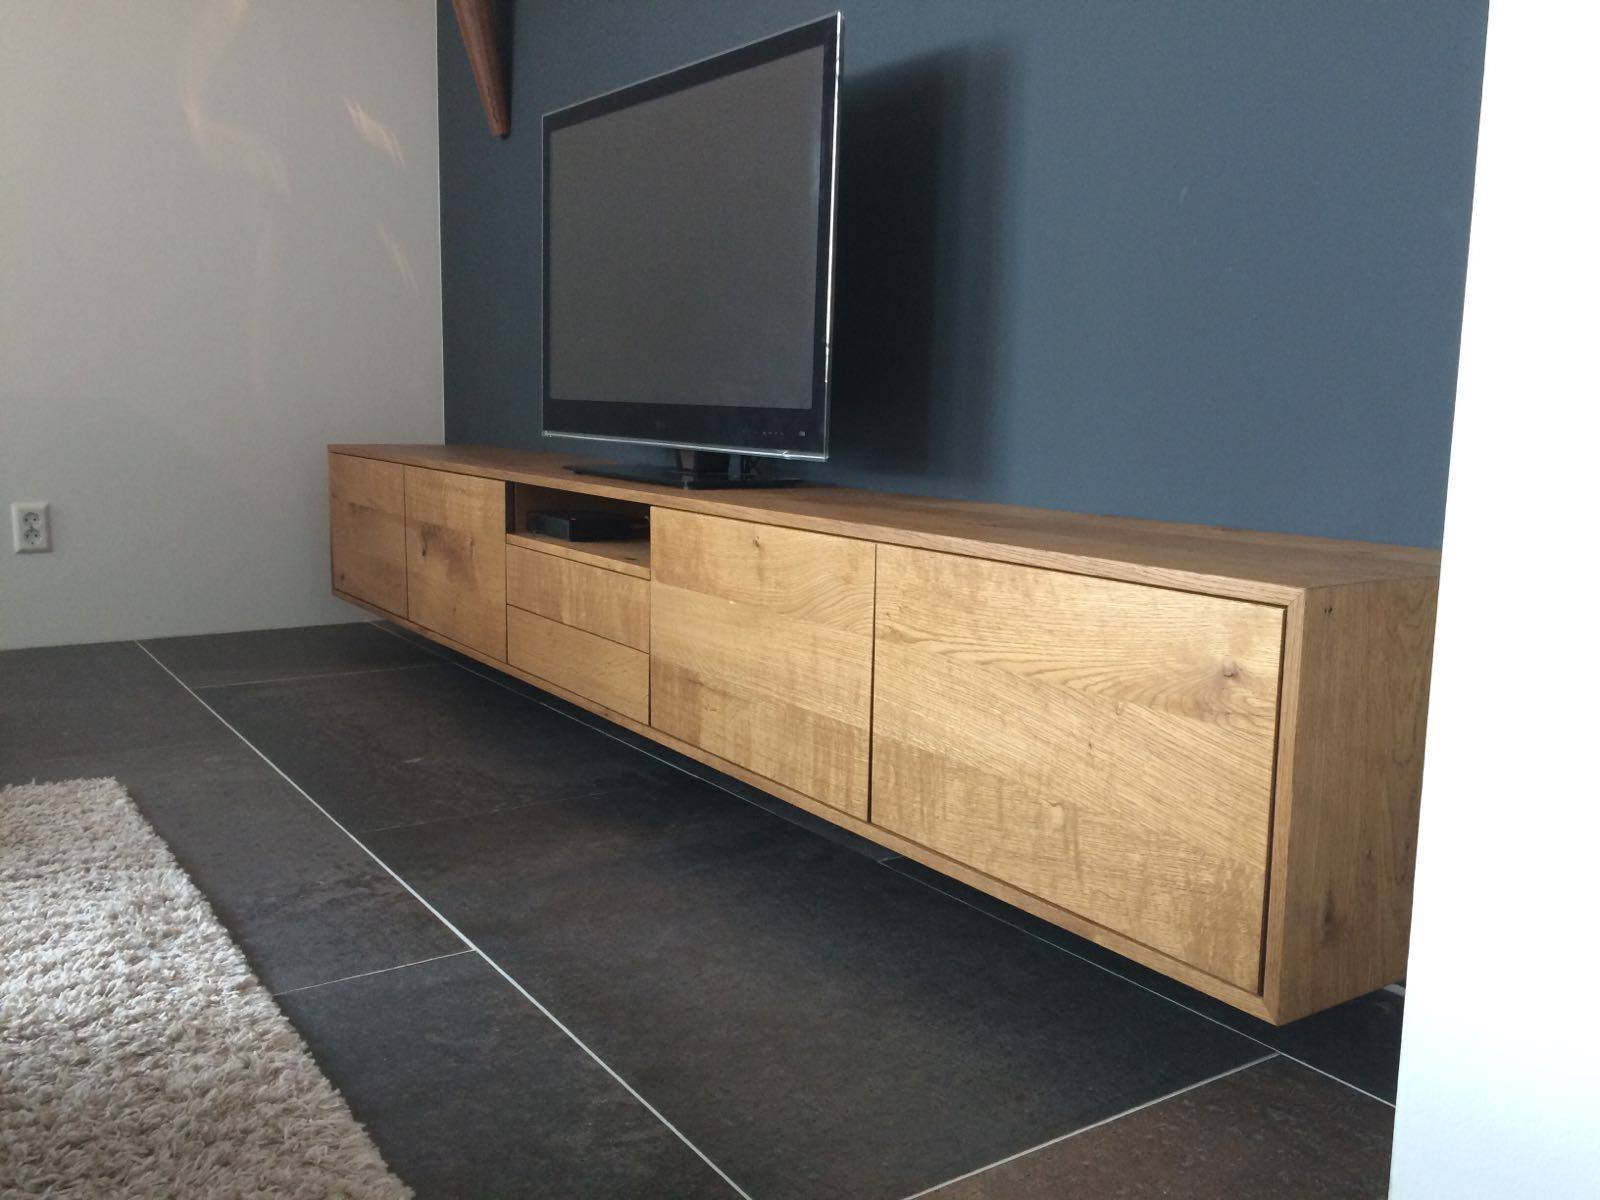 Tv Meubel In Wit Hoogglans.Wit Hoogglans Dressoir Meubel Of Massief Houten Tv Meubel